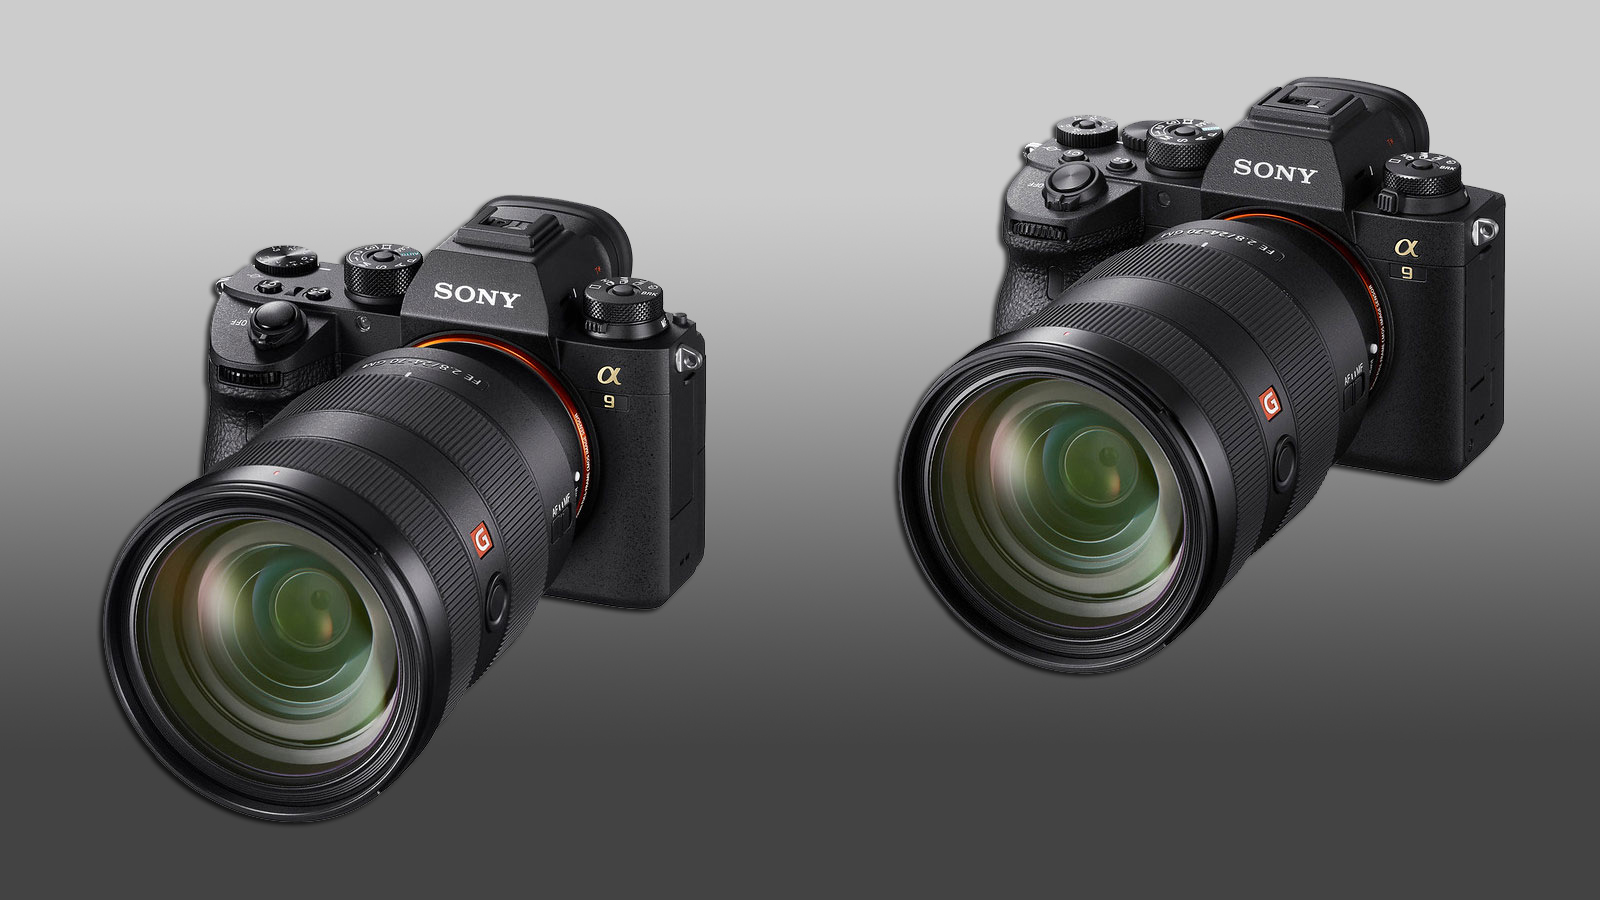 Sony Alpha A9 vs A9 II: the key differences between Sony's sports-oriented cameras